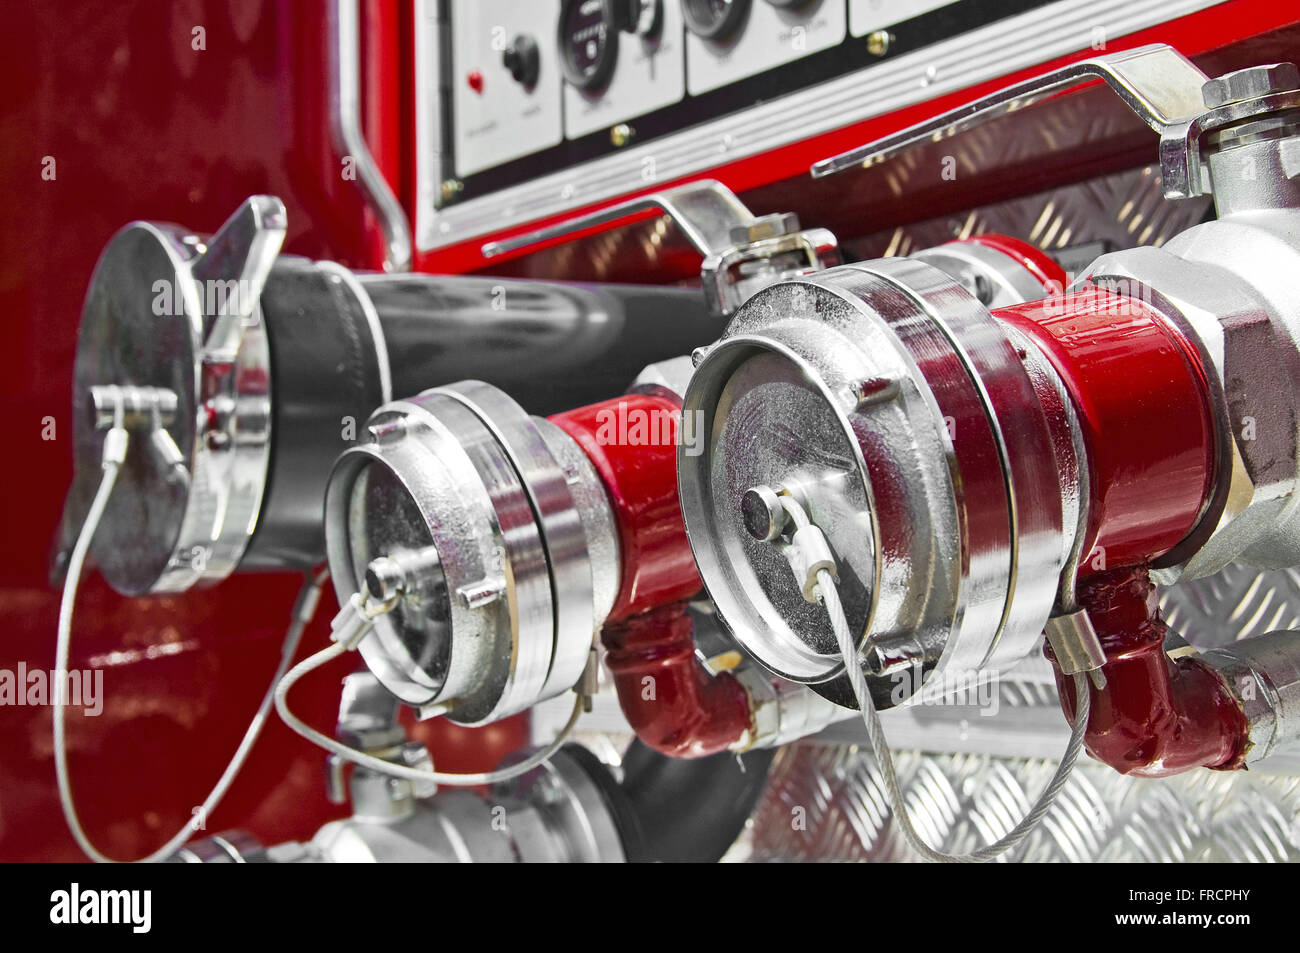 Detail of valves which are attached the hoses in fire truck - Stock Image